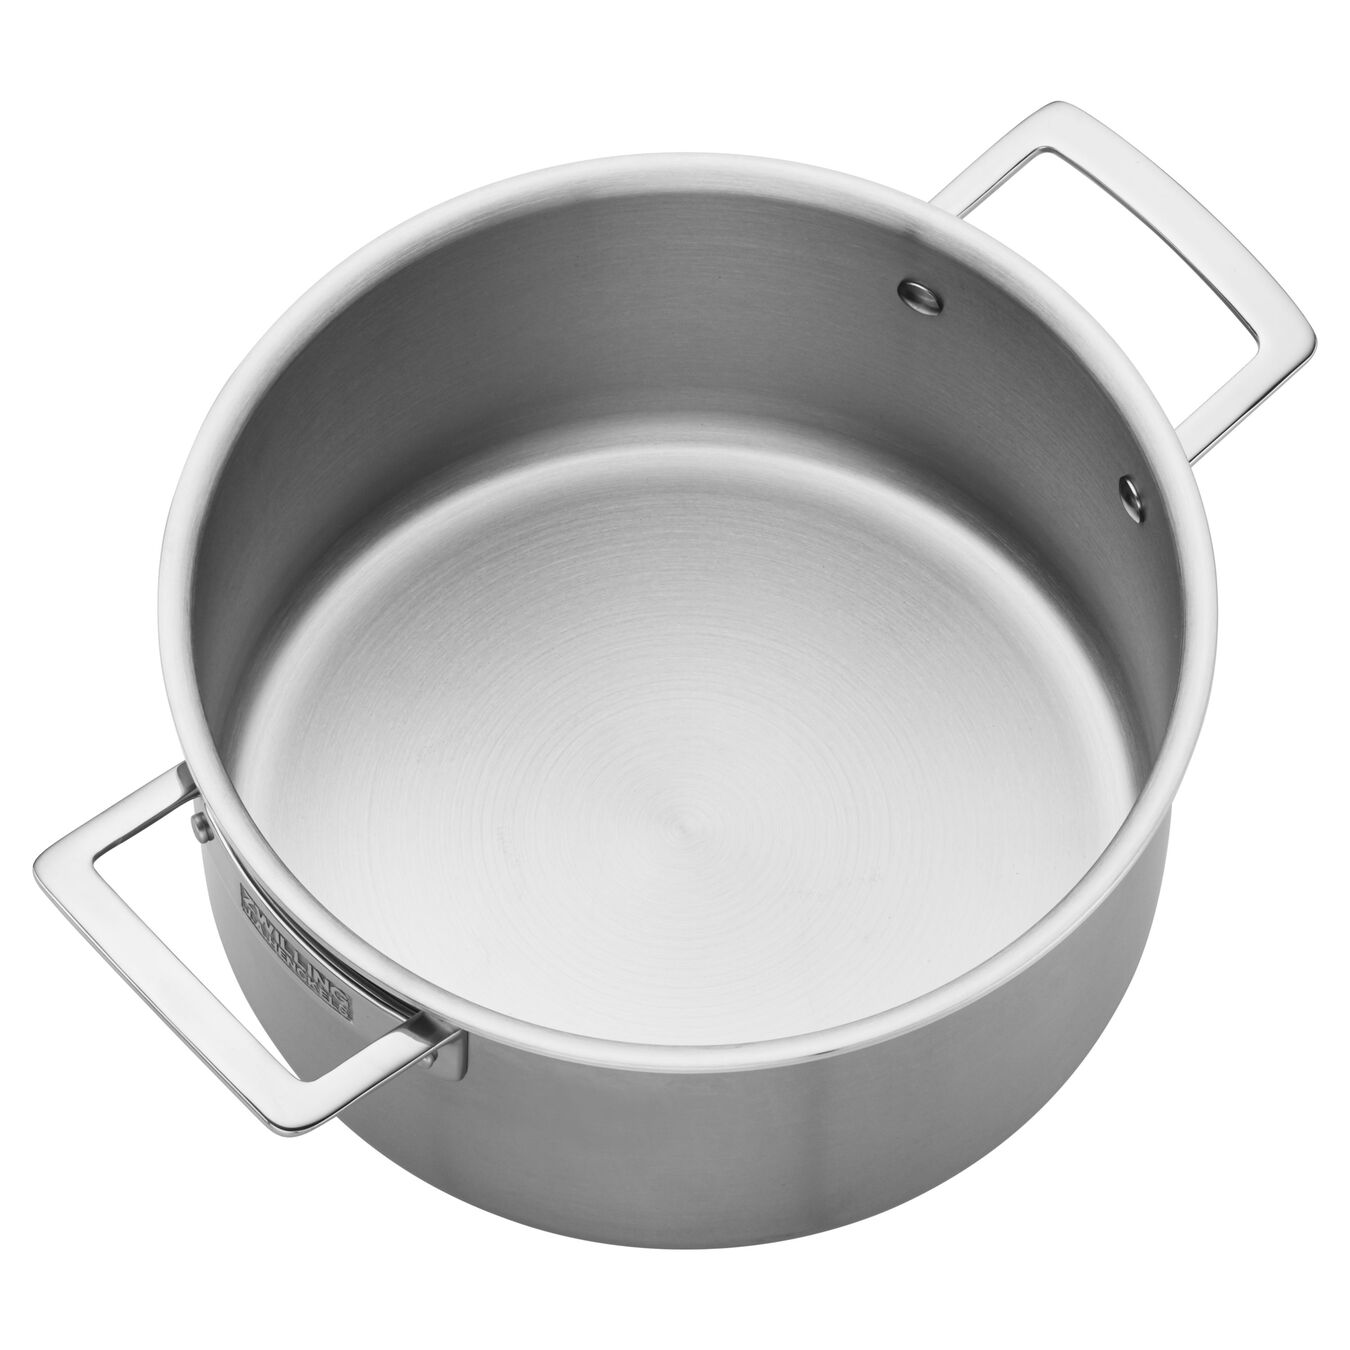 5.2 l 18/10 Stainless Steel Stock pot,,large 6